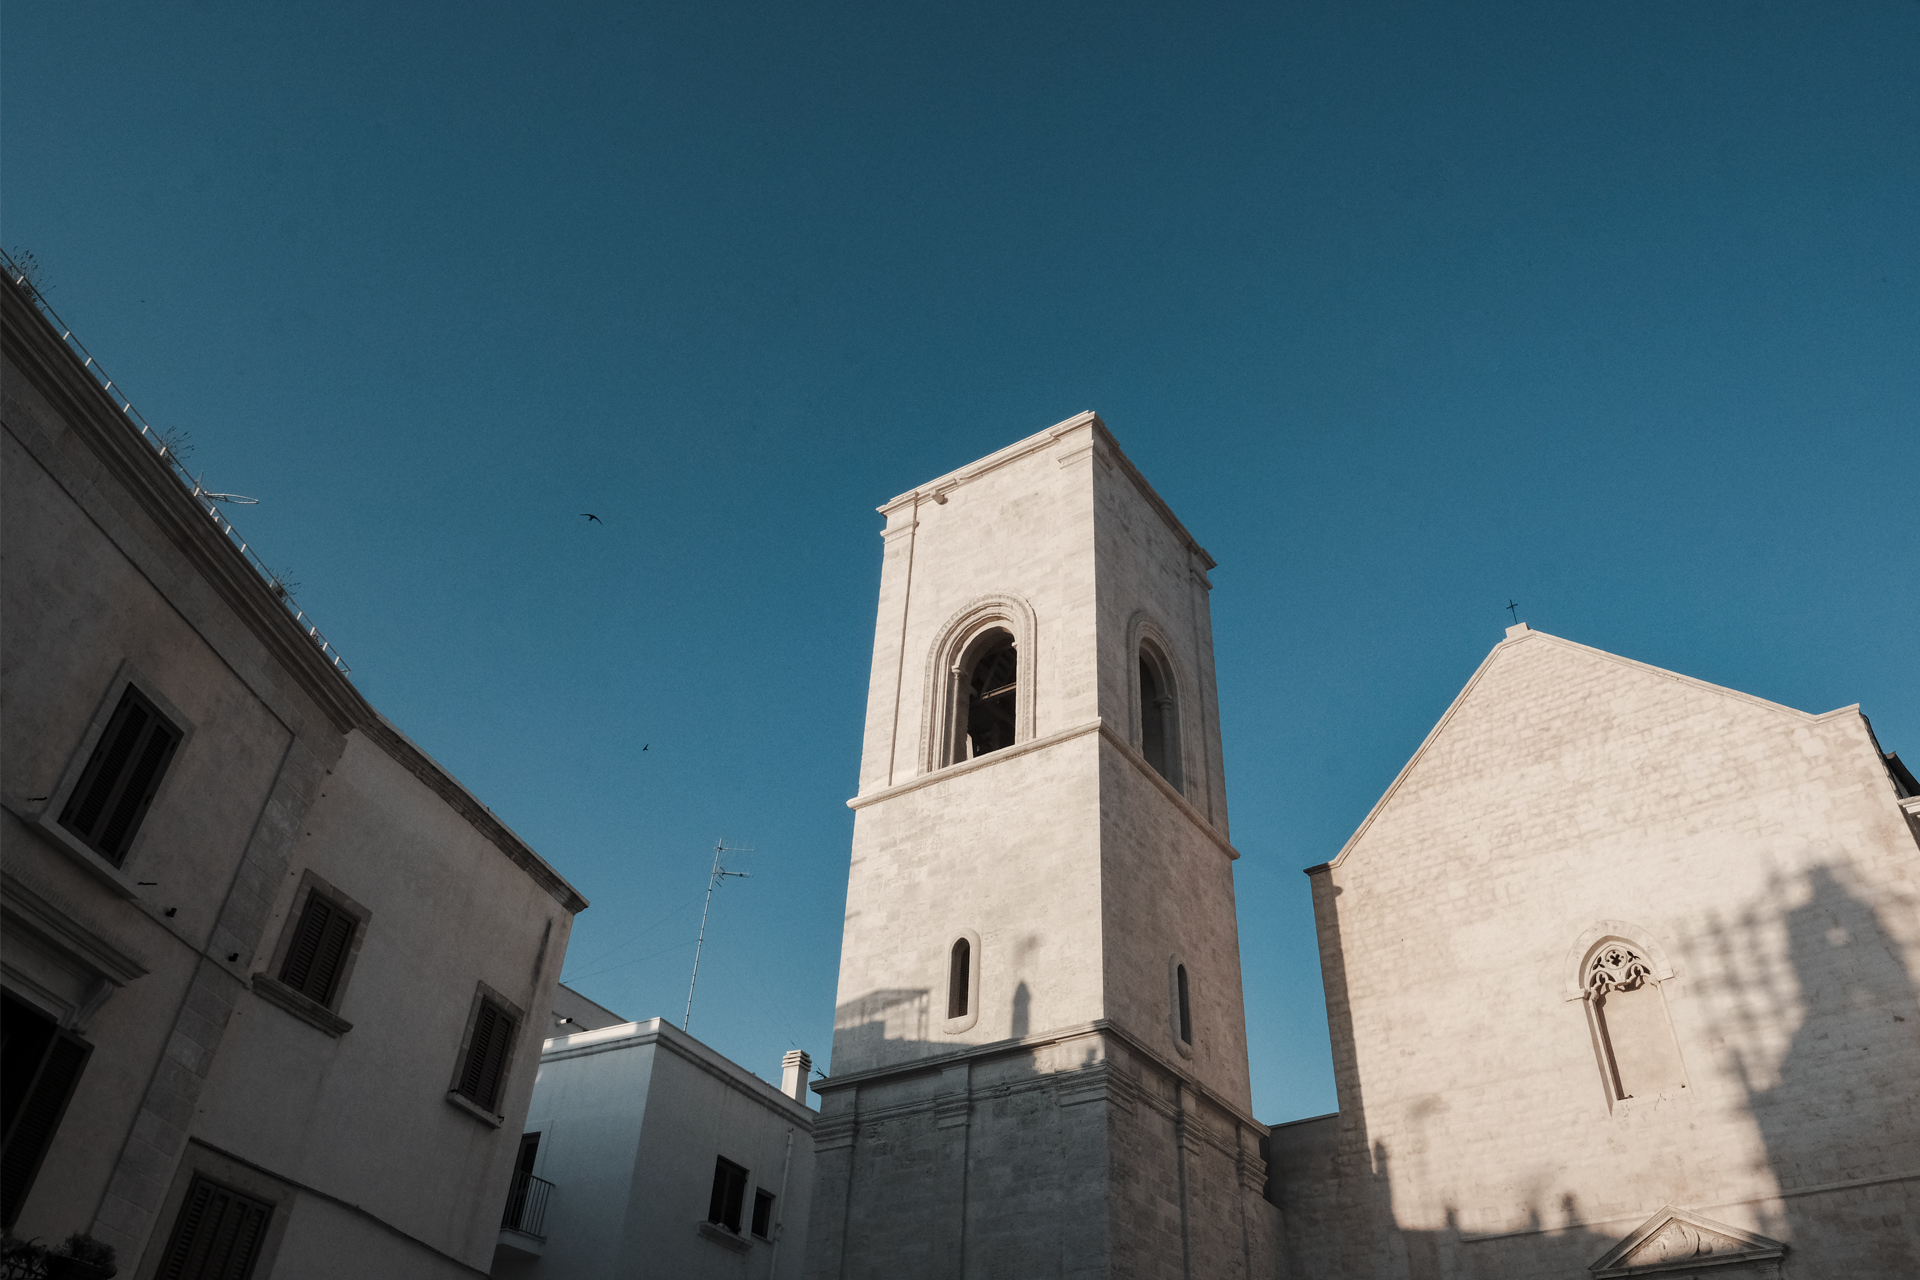 White church tower of Polignano